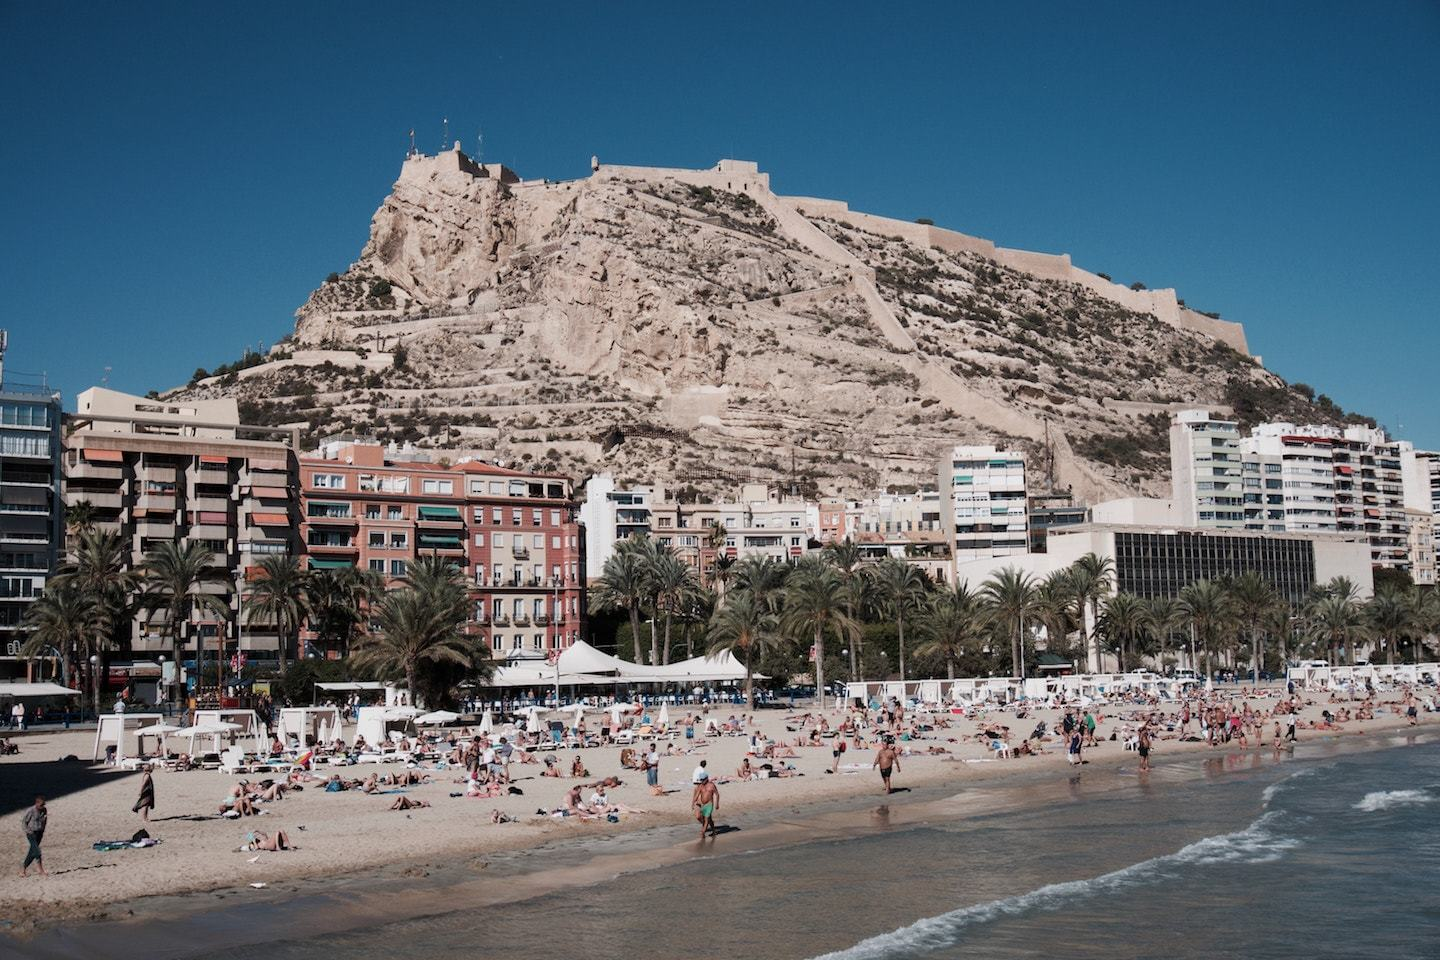 beach surrounded by mountain and buildings in alicante spain